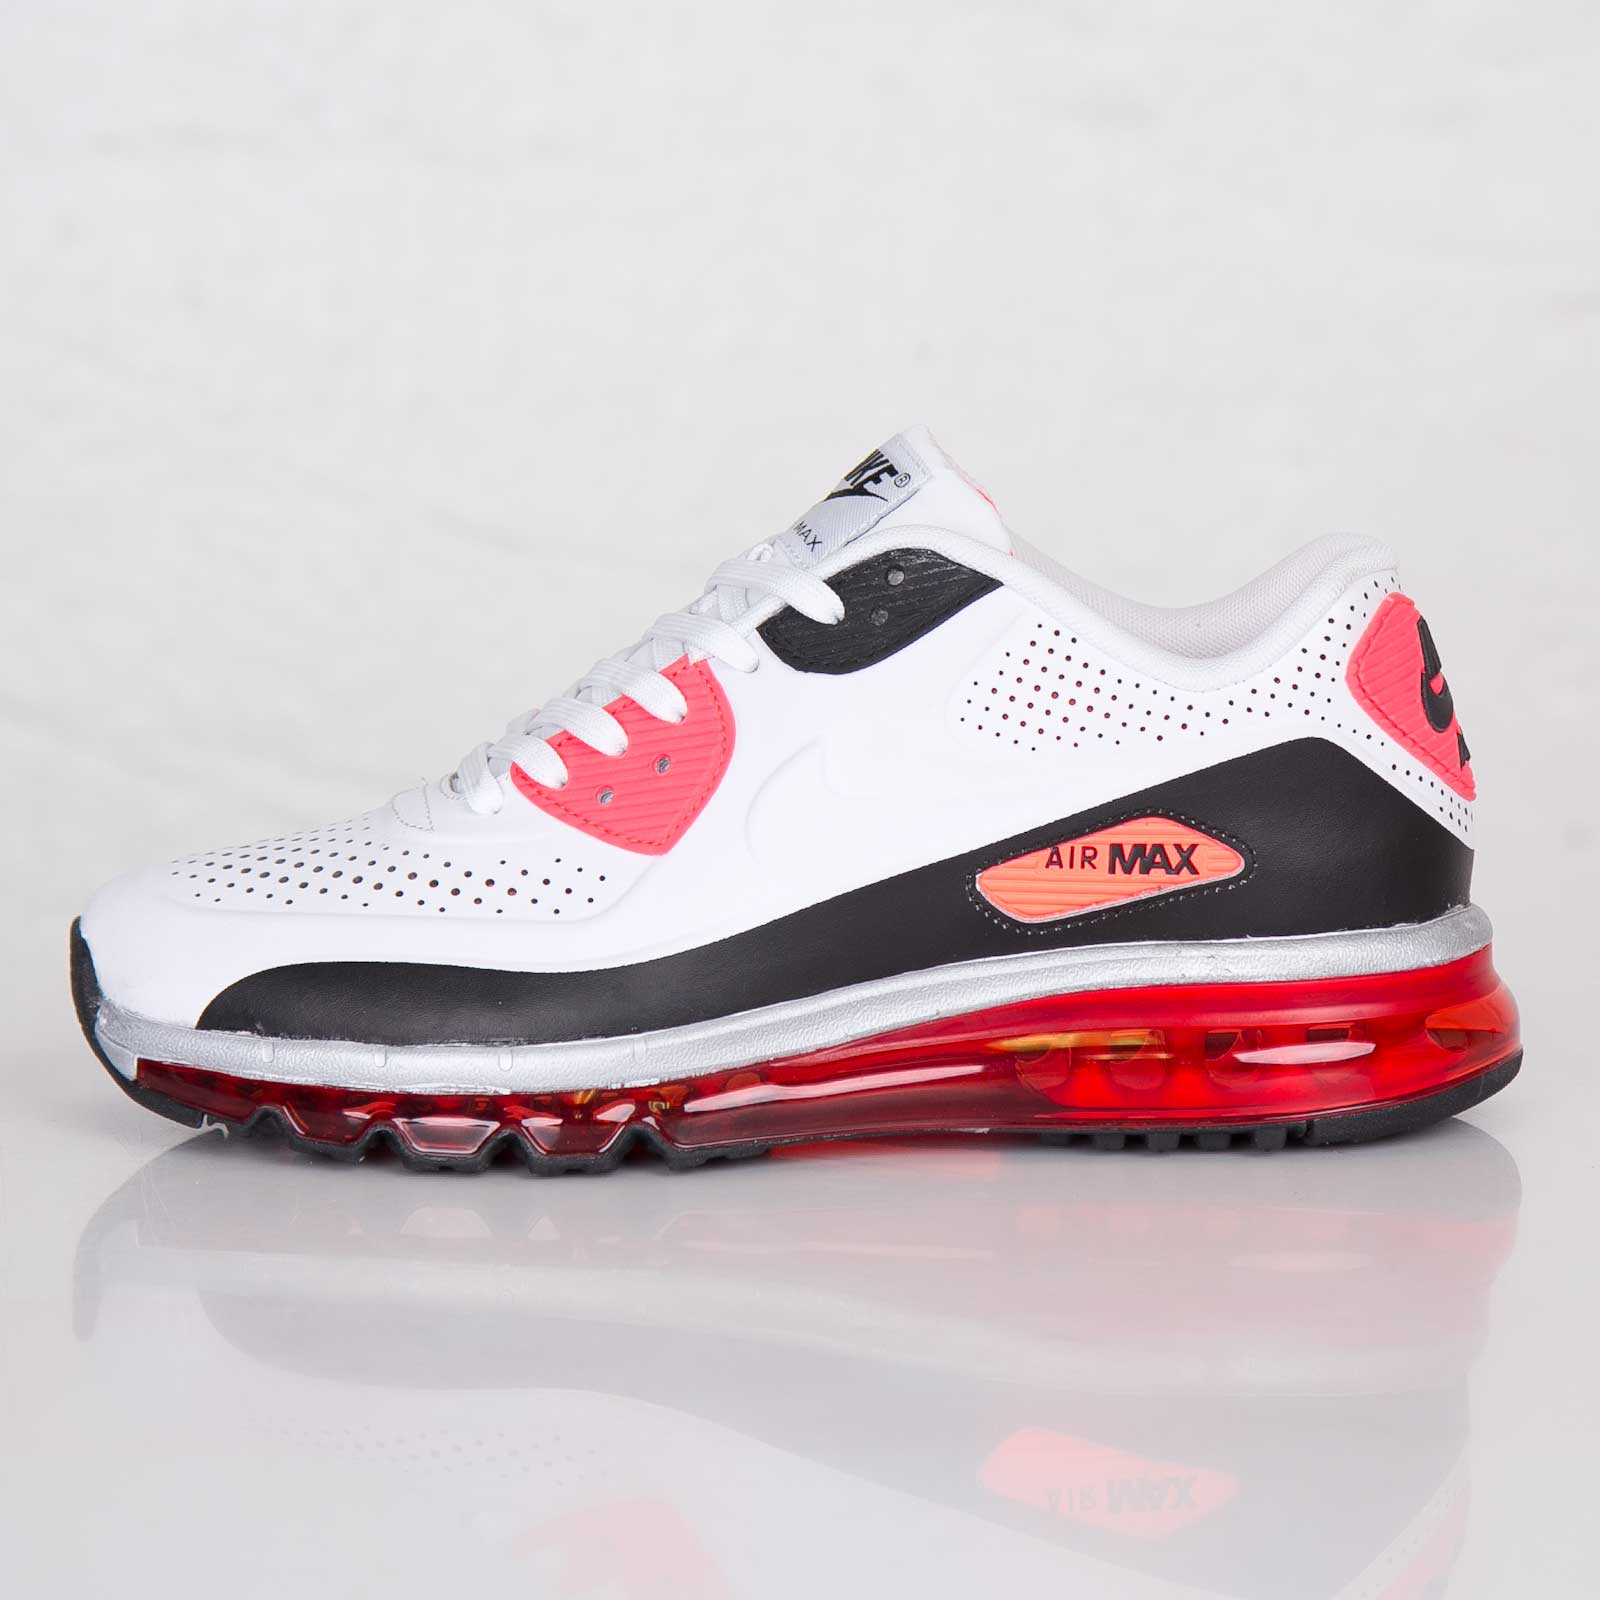 NIKE AIR MAX 90 2014 Leather Qs Size 10.5 646909 100 White